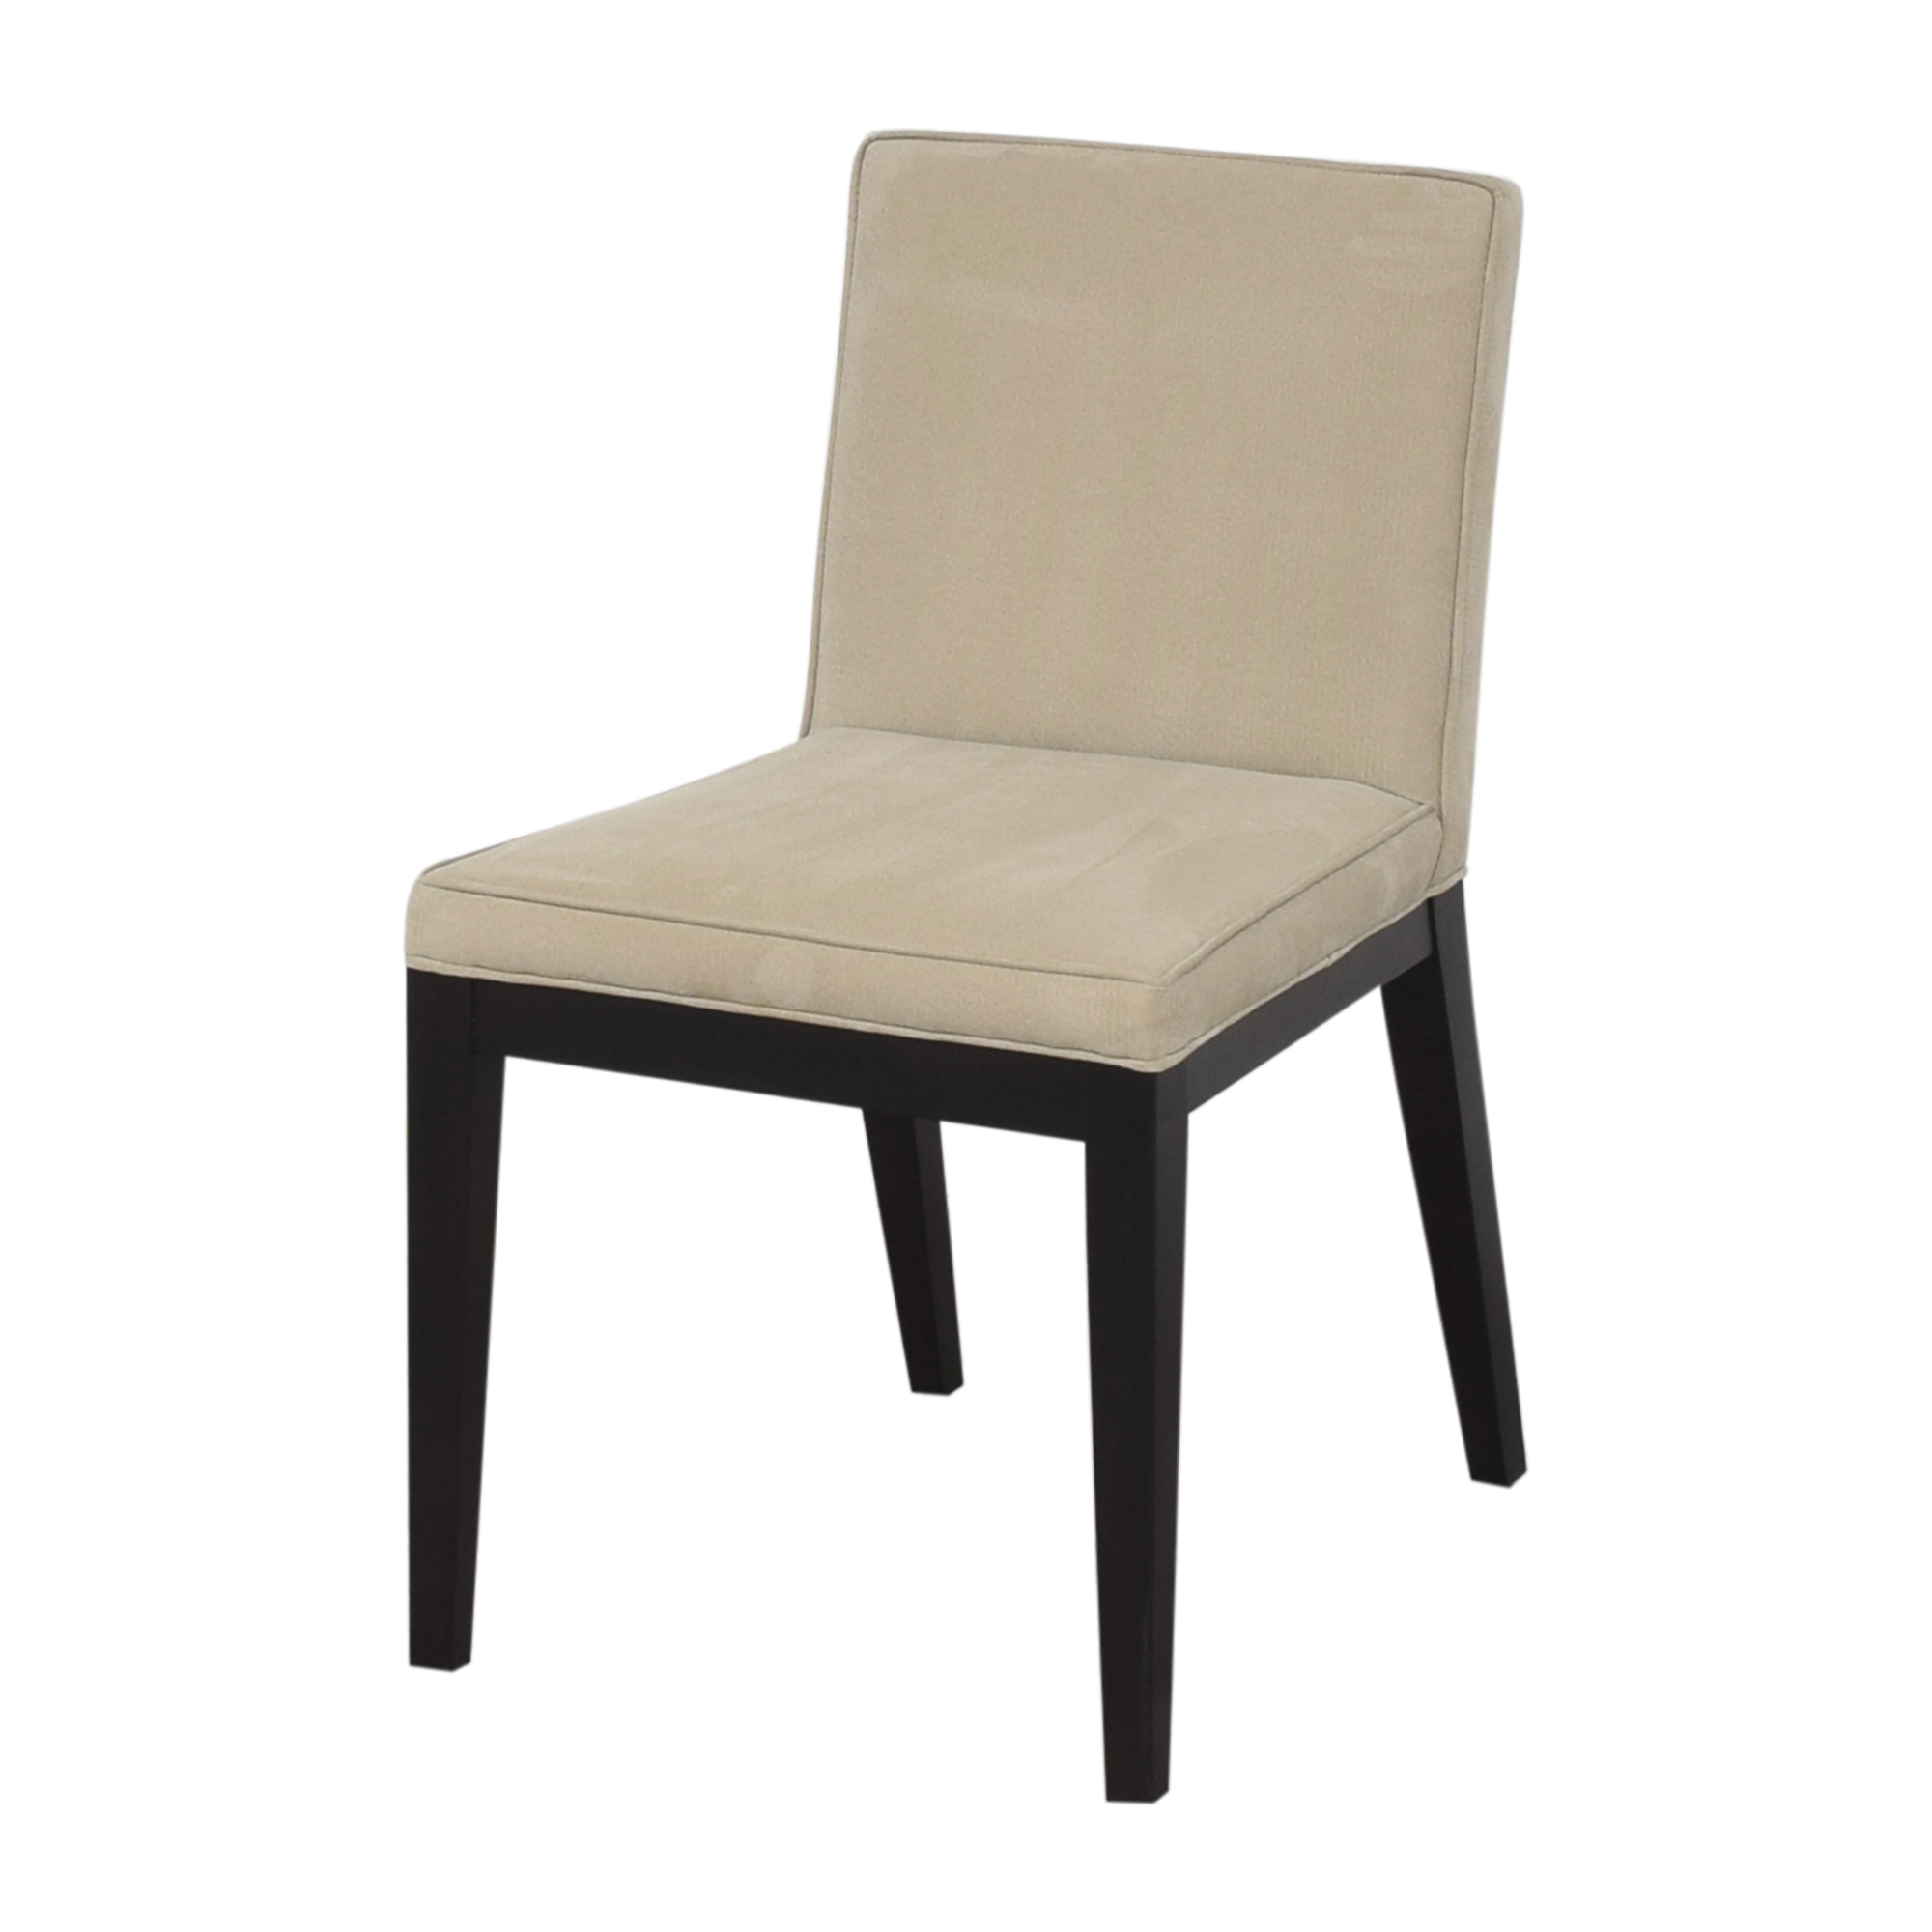 Room & Board Room & Board Ansel Dining Chairs ct